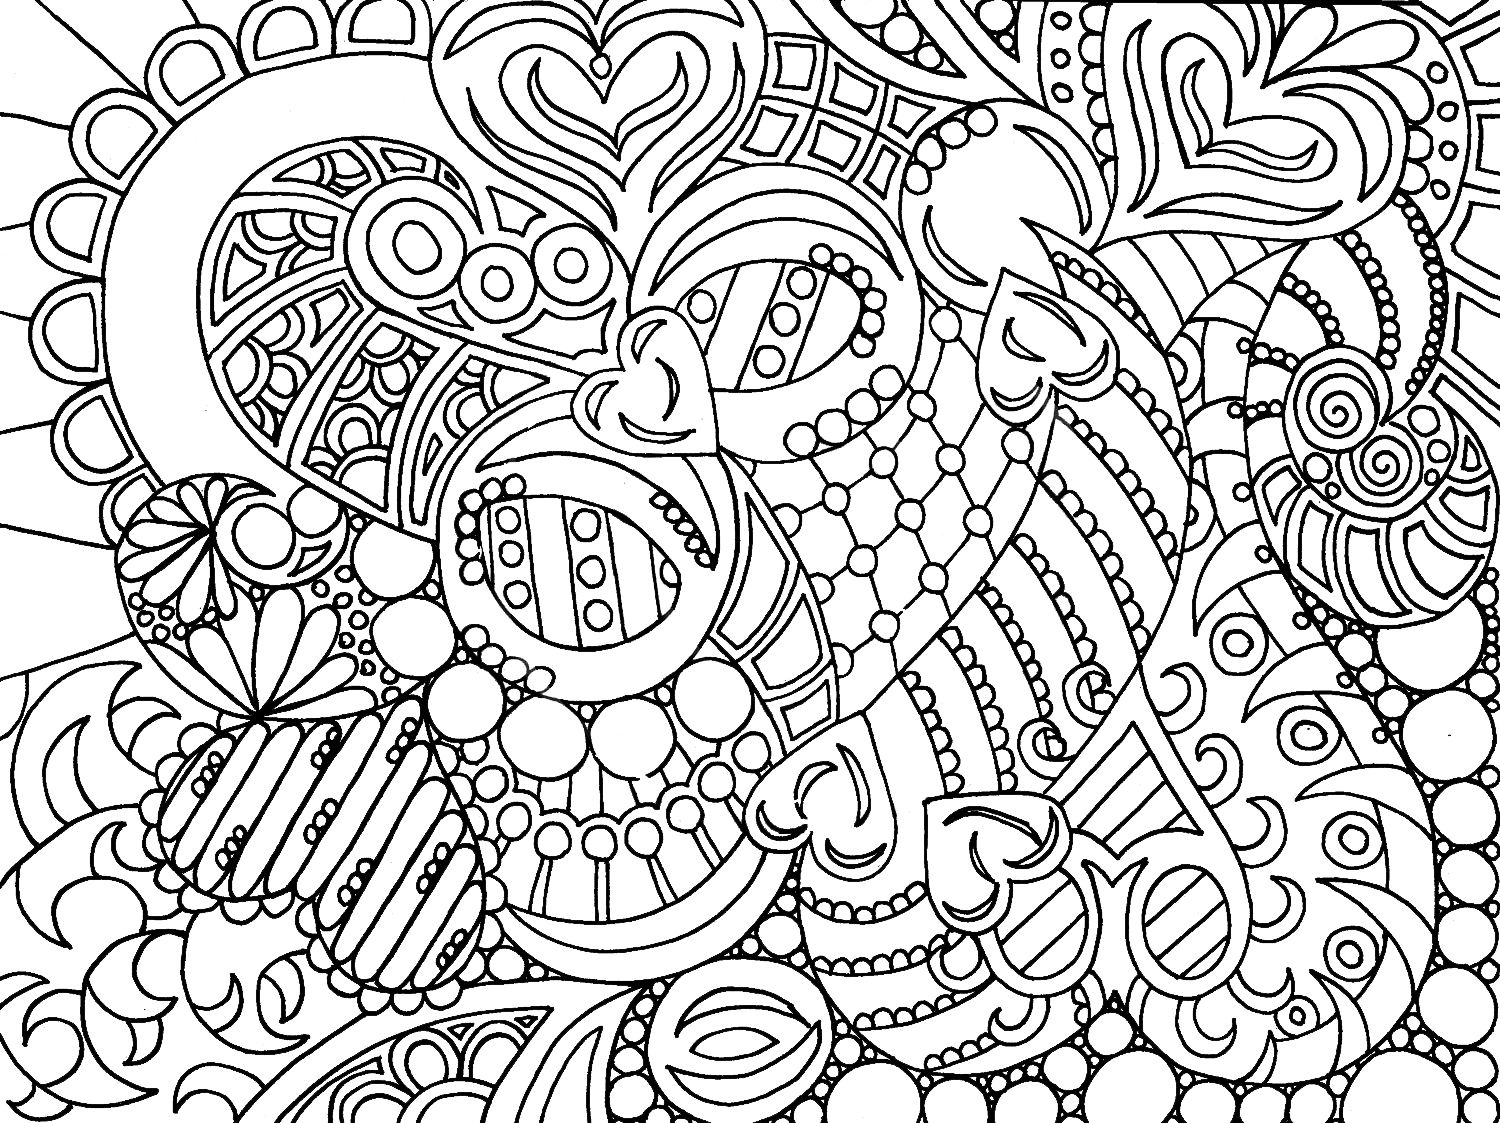 Free online coloring pages for adults - Advanced Coloring Pages Adults Coloring Pages Pictures Imagixs